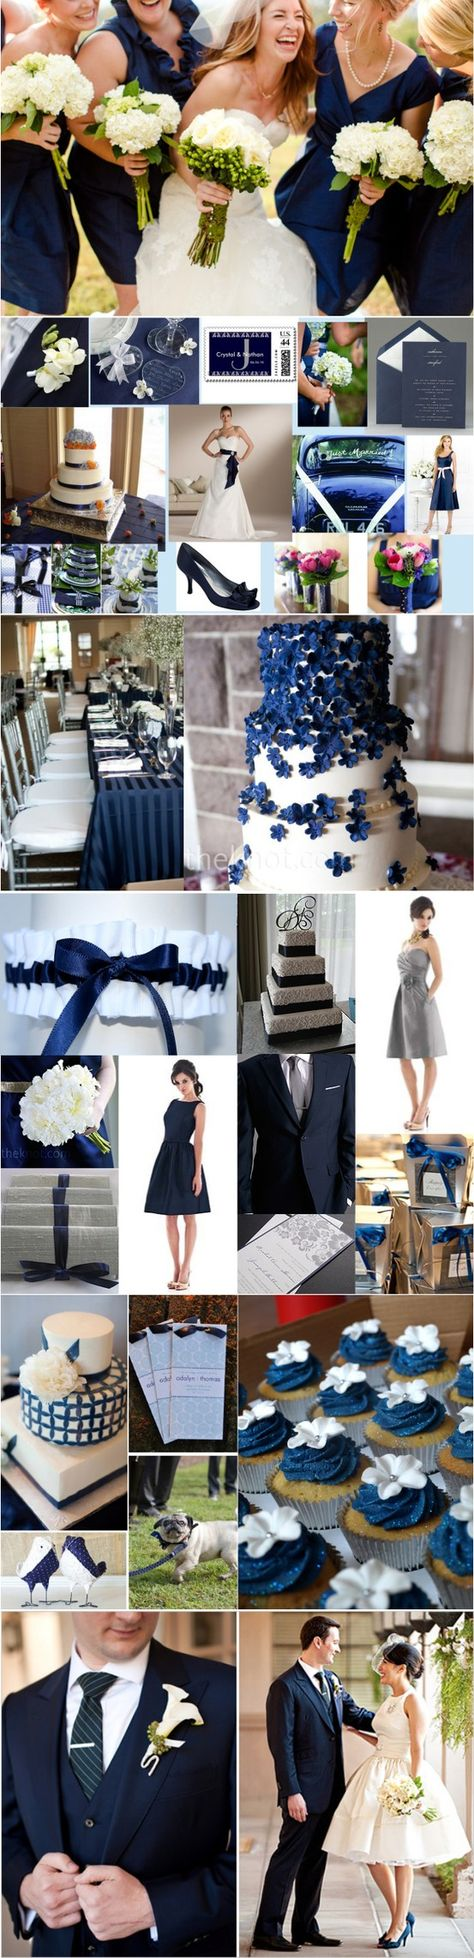 Blue and White Wedding Ideas - Cobalt Blue - beautiful color